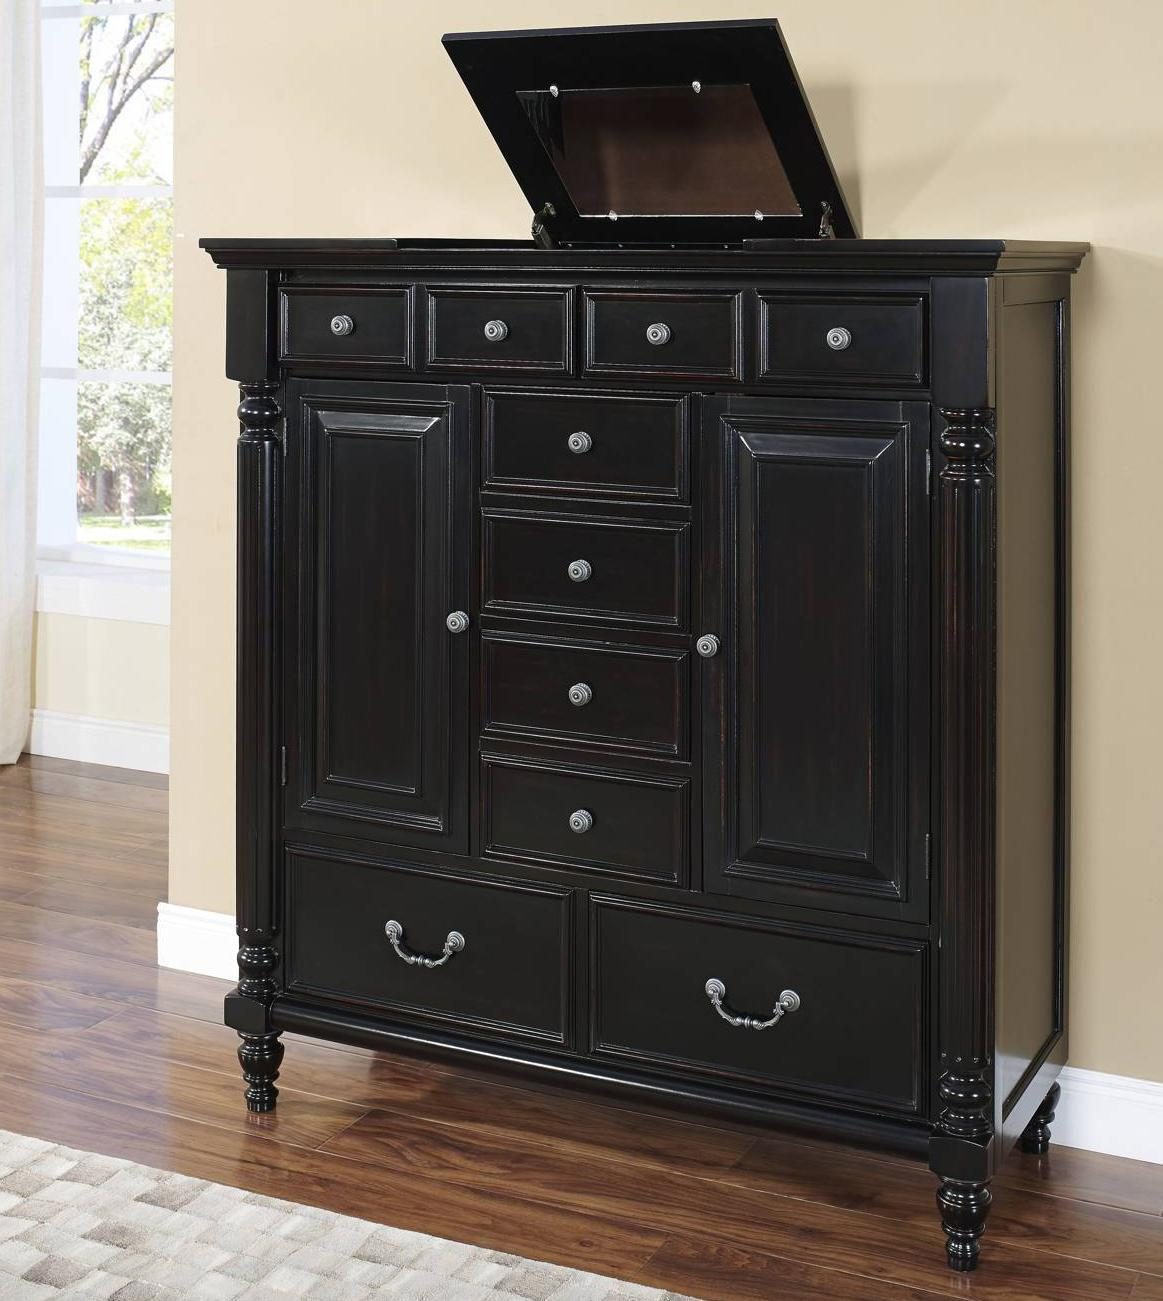 New Classic Martinique Bedroom Transitional Mule Chest With Lift Top Storage Michael 39 S